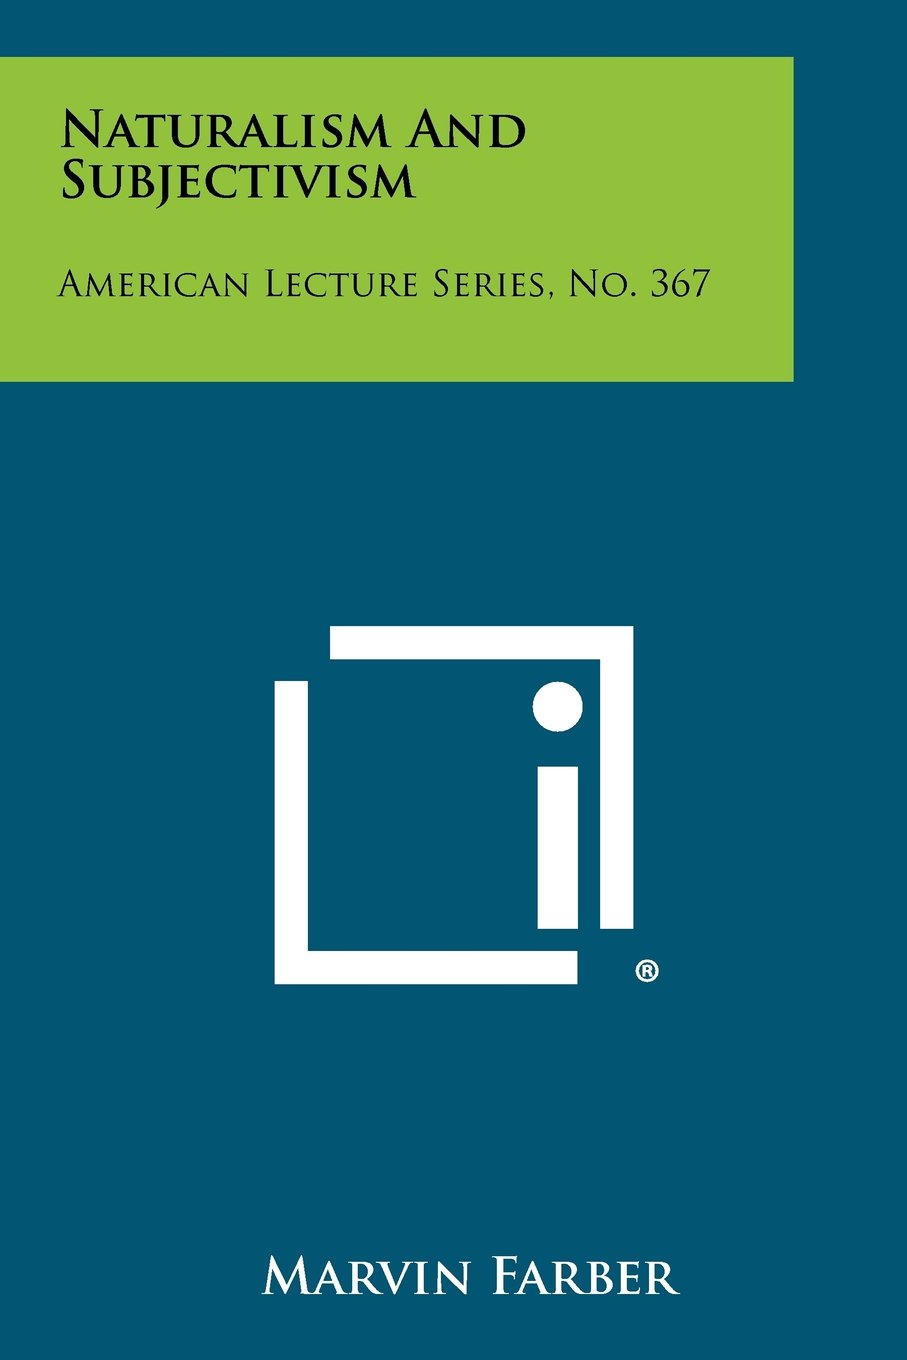 Naturalism And Subjectivism: American Lecture Series, No. 367 PDF